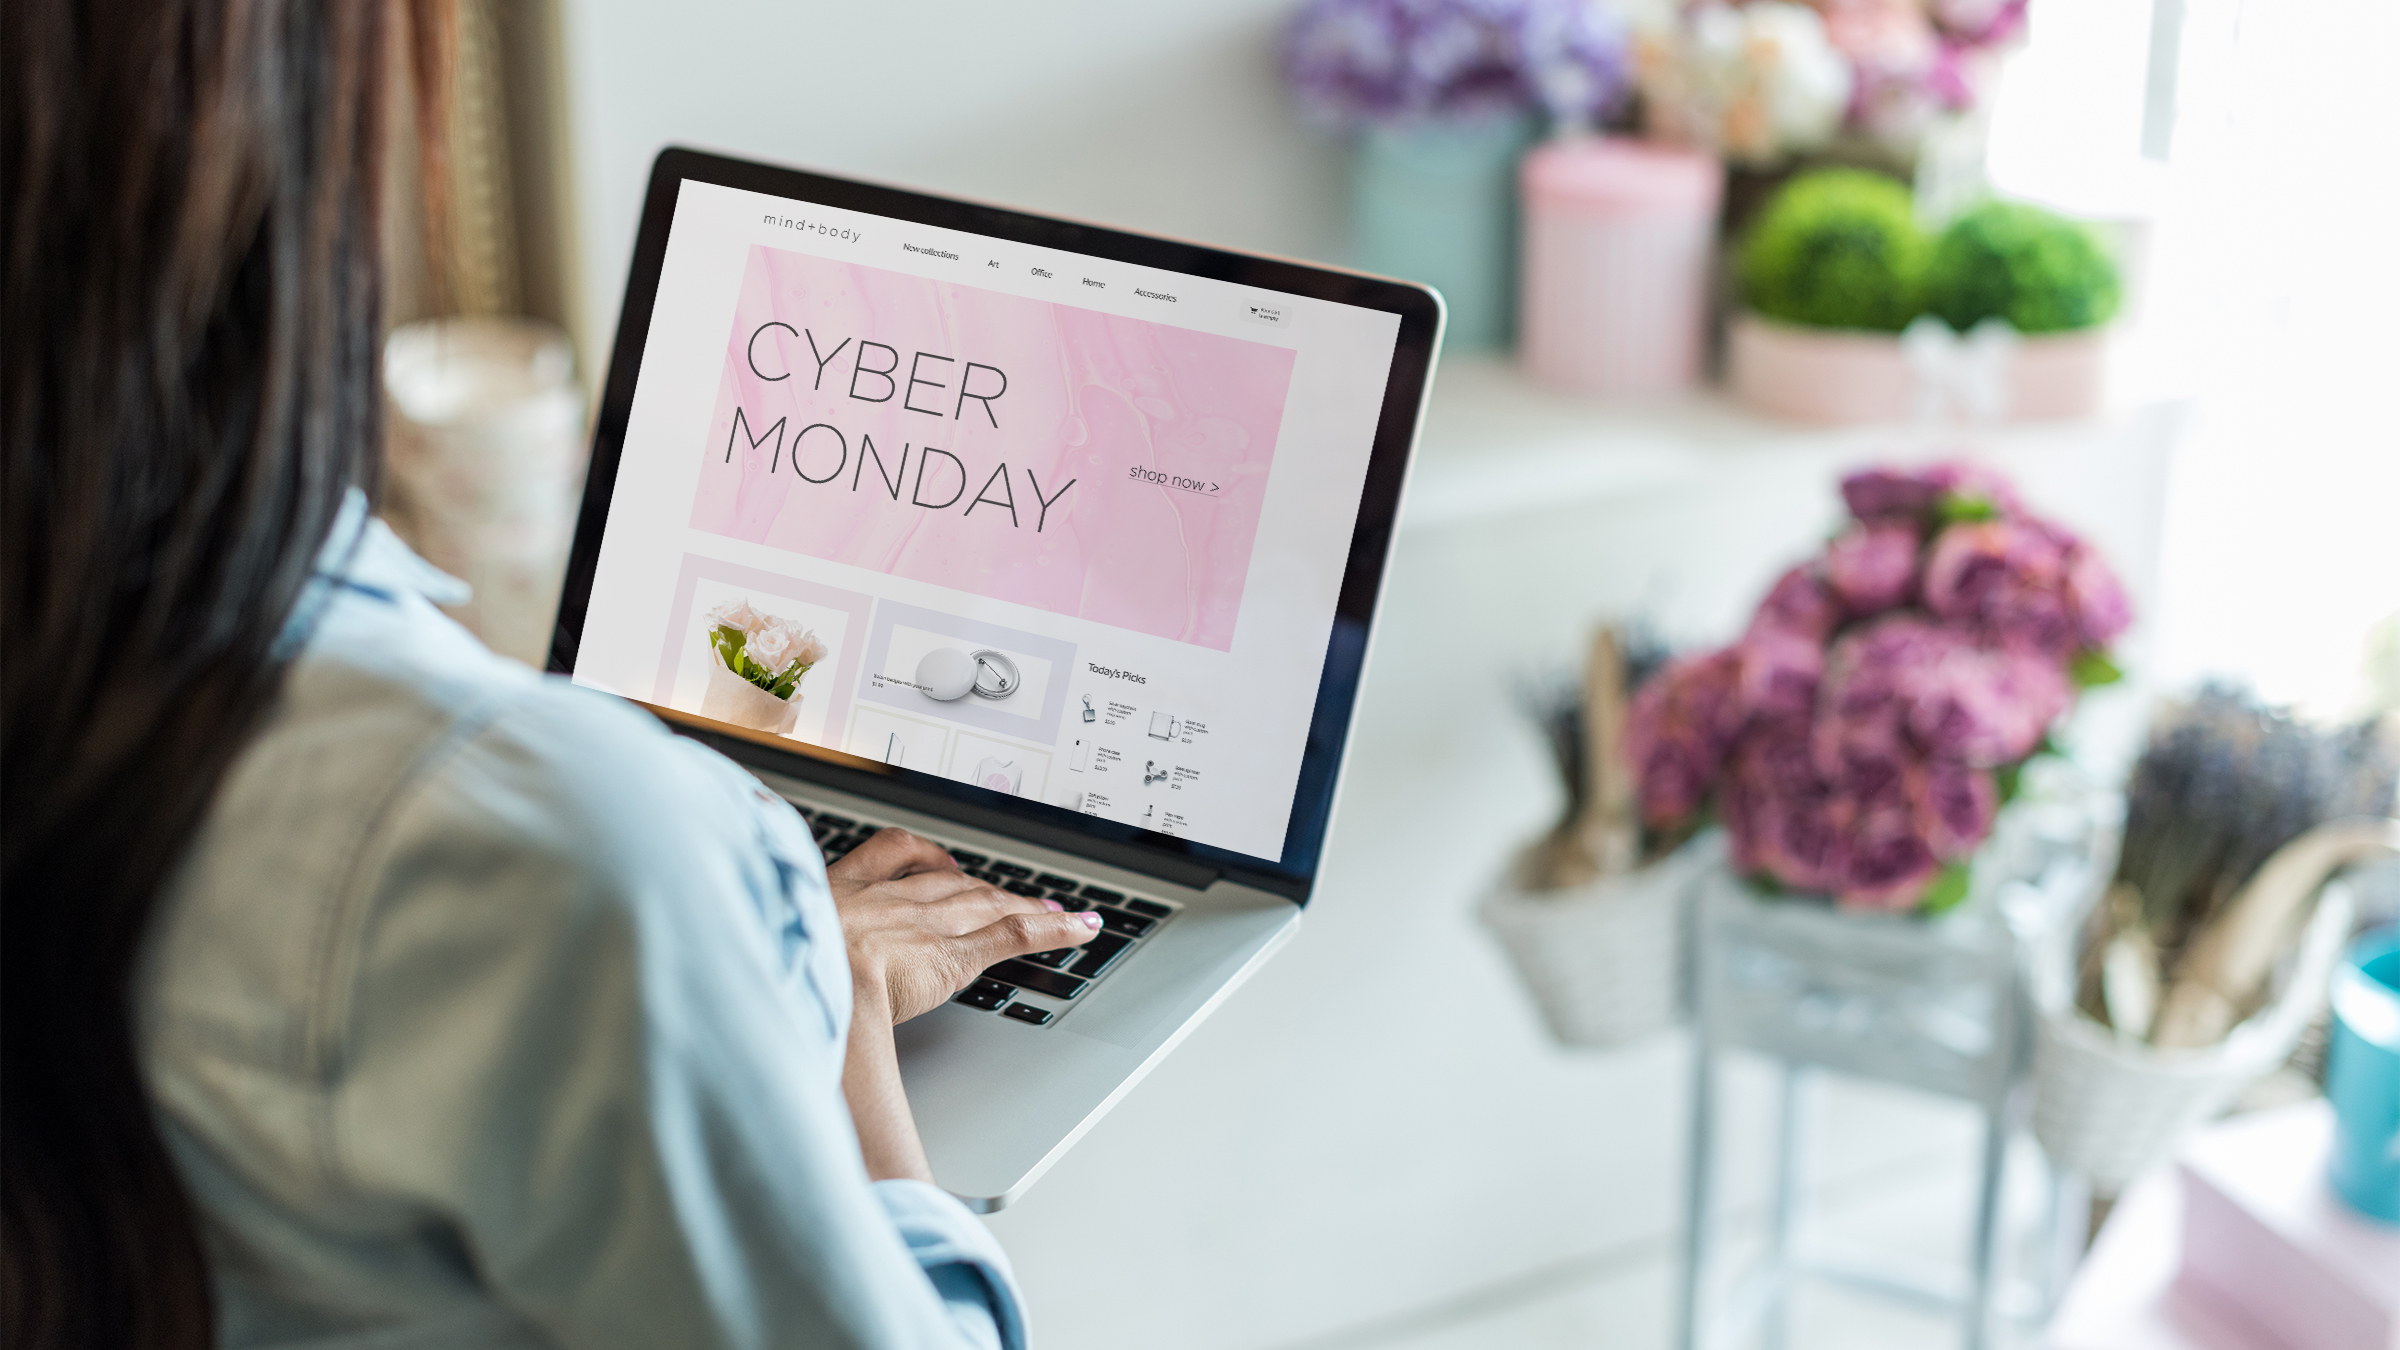 Four things you can do to prepare for Cyber Monday